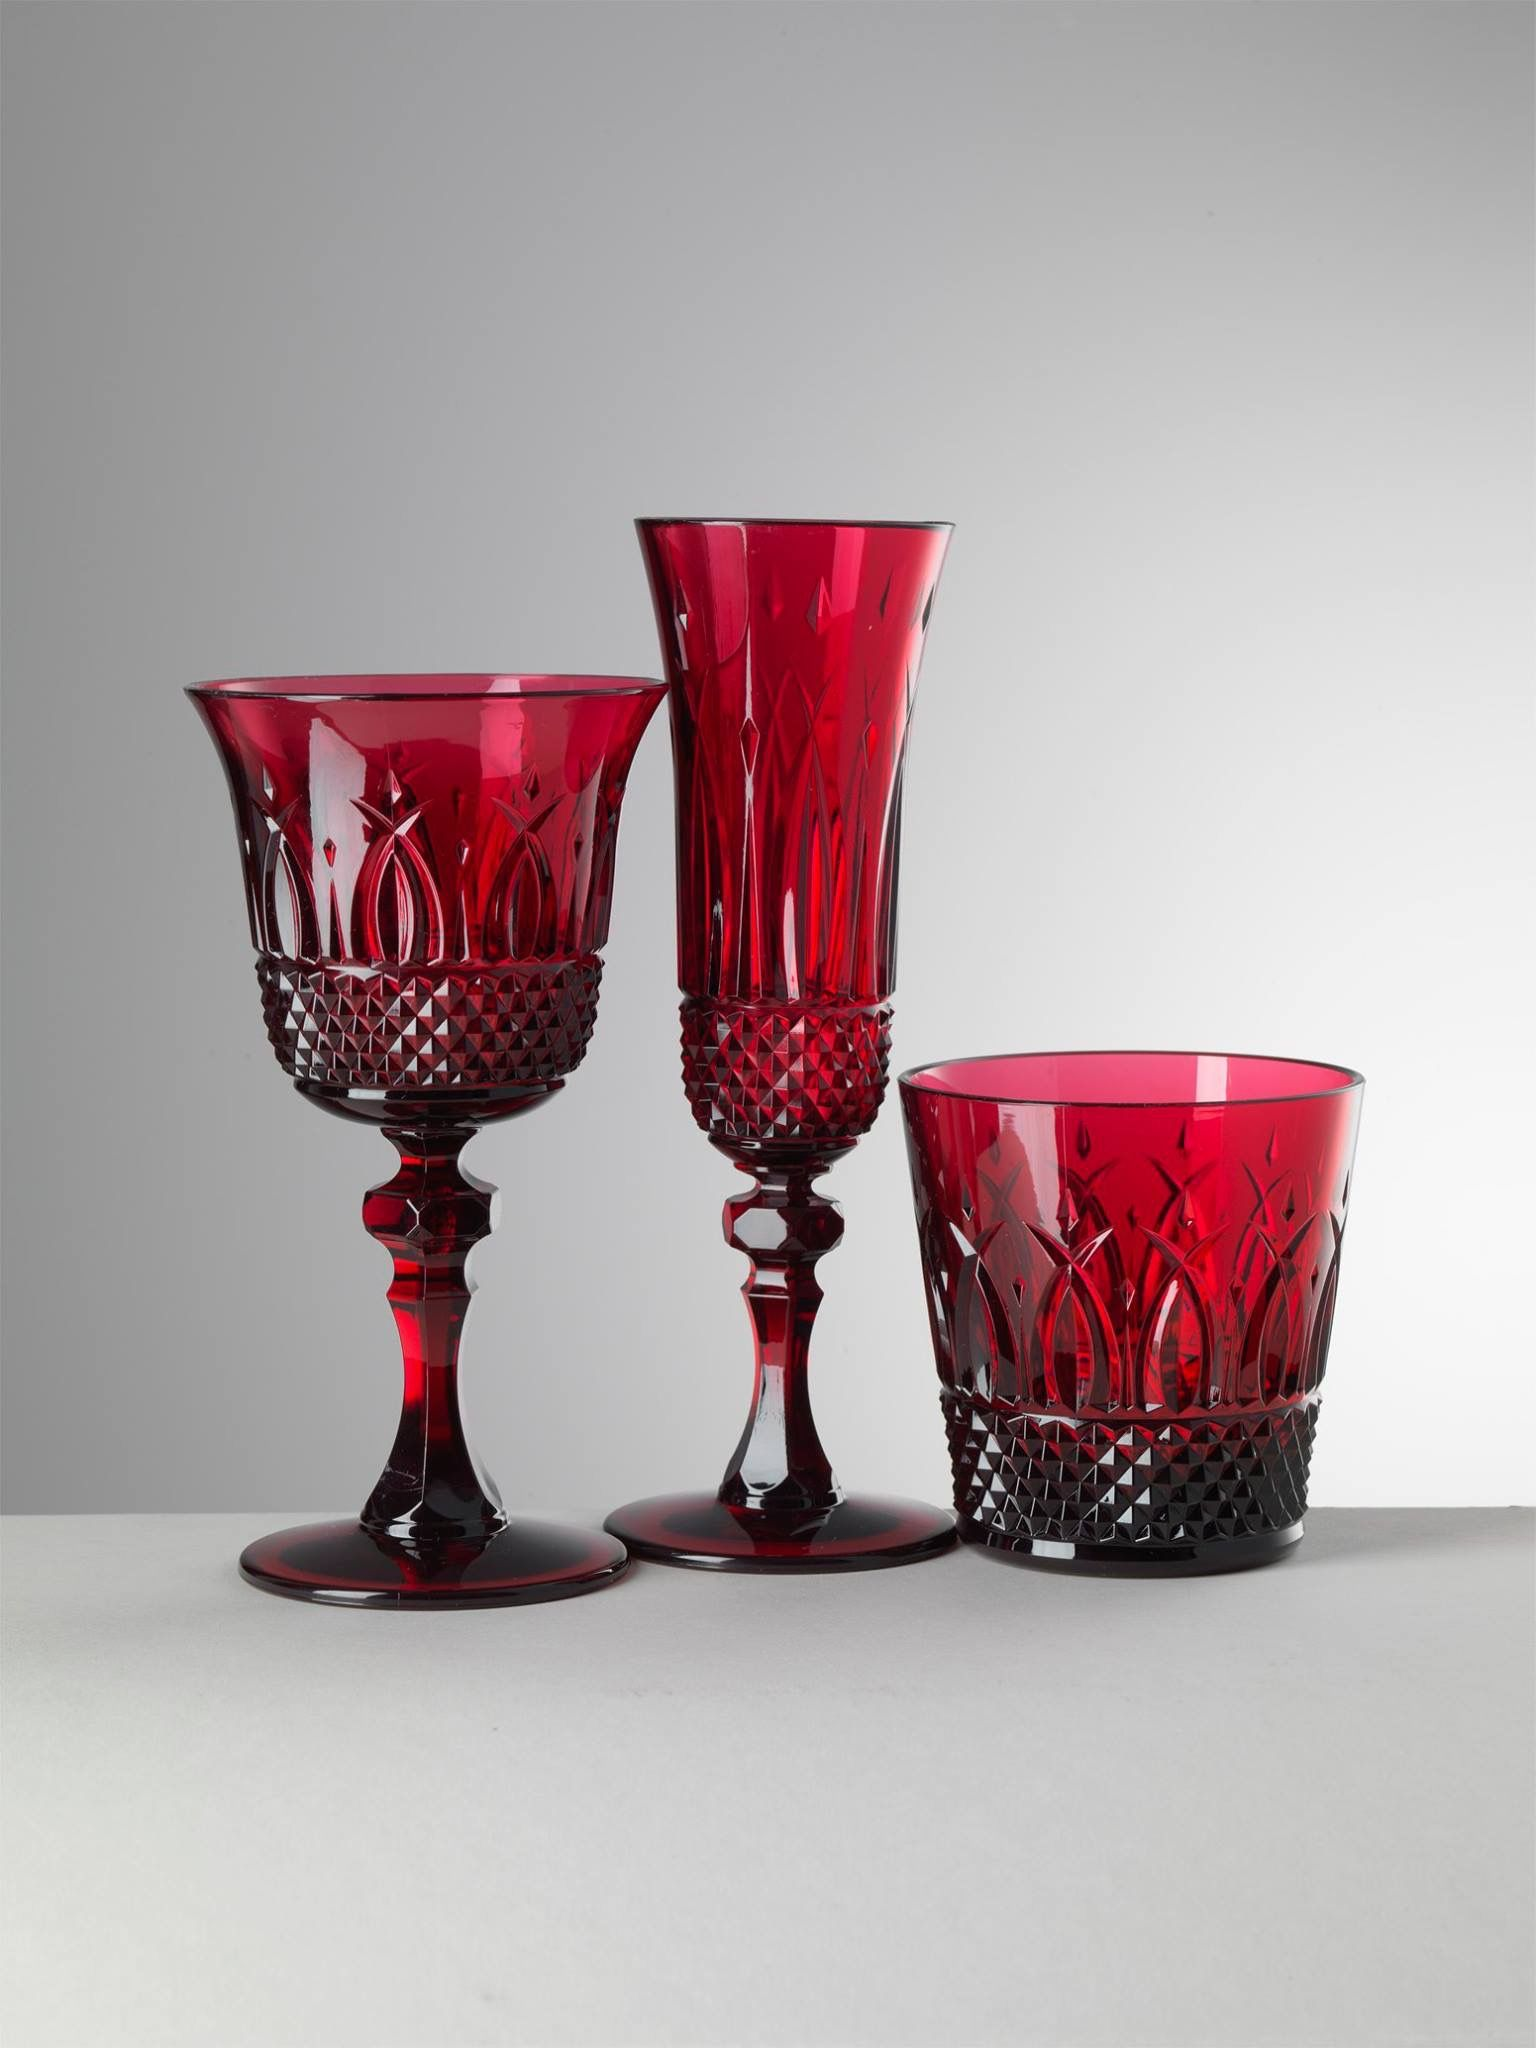 Italia Flute Water And Wine Glasses Dressed In Ruby Acrylic Drinkware Mariolucagiusti Syntheticcrystal Specialoccasion Tableware Tabledes Bicchieri Vino